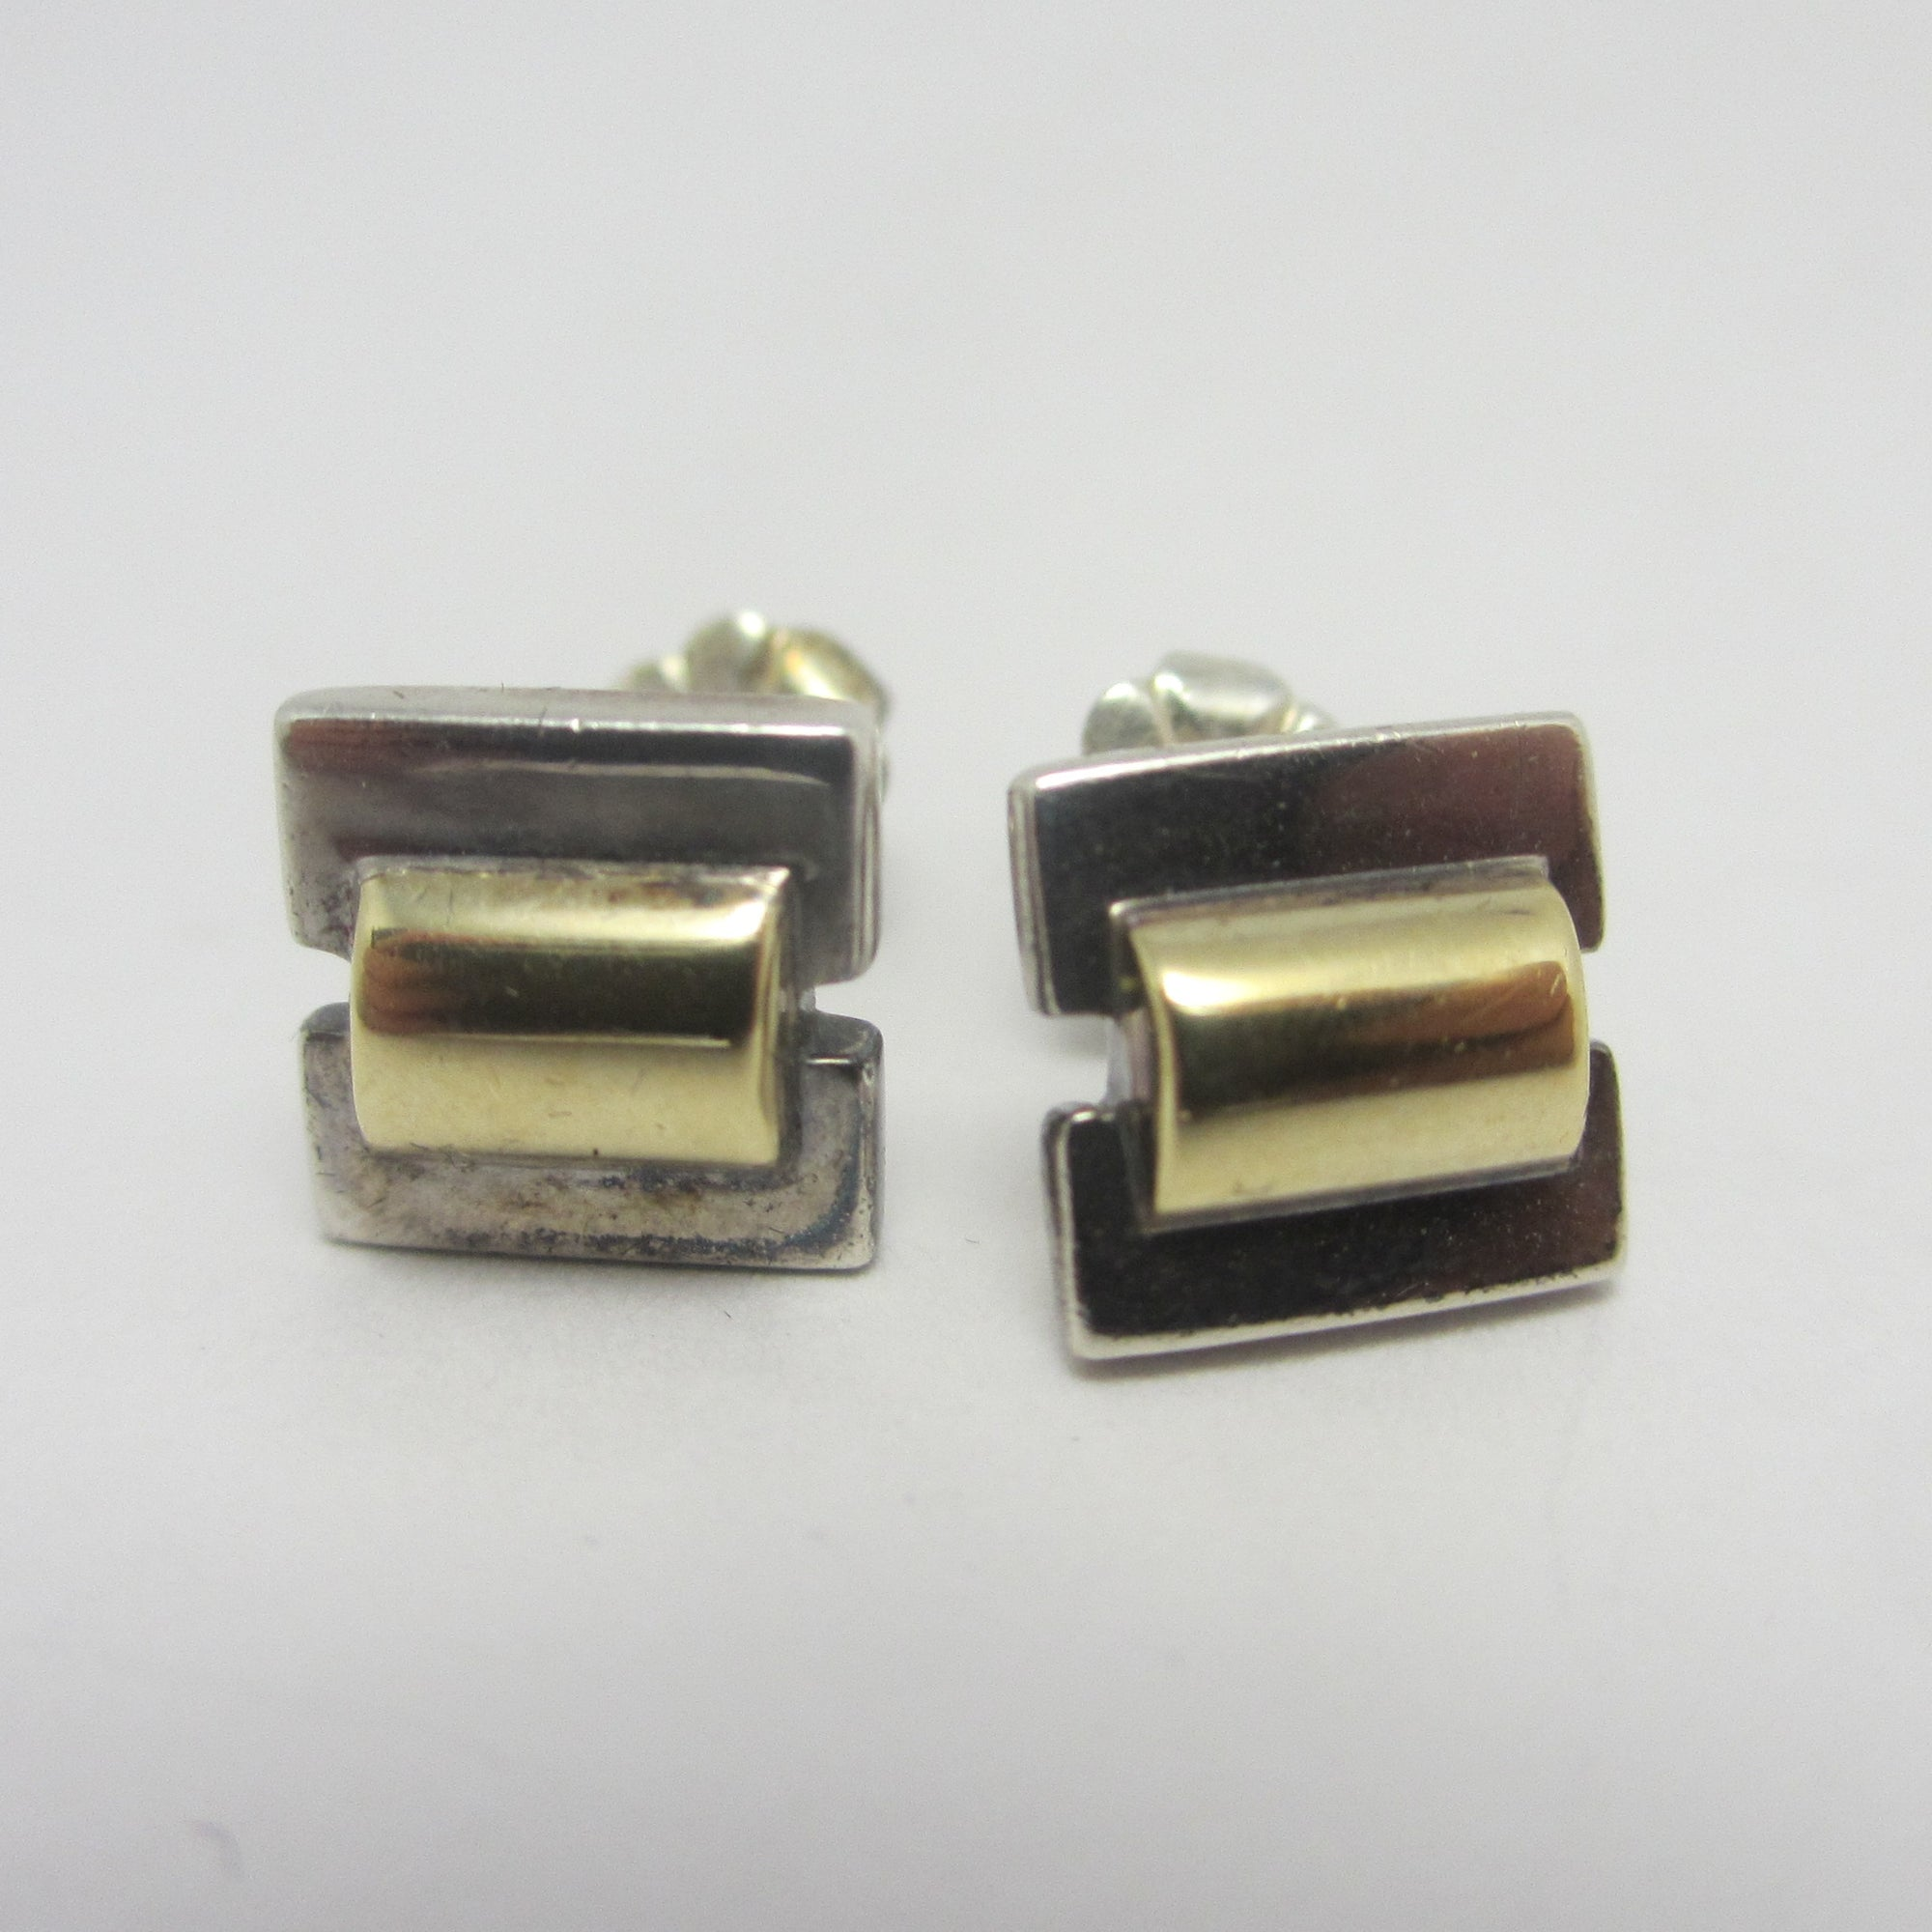 9k Gold Sterling Silver Stud Earrings Vintage 1958 English